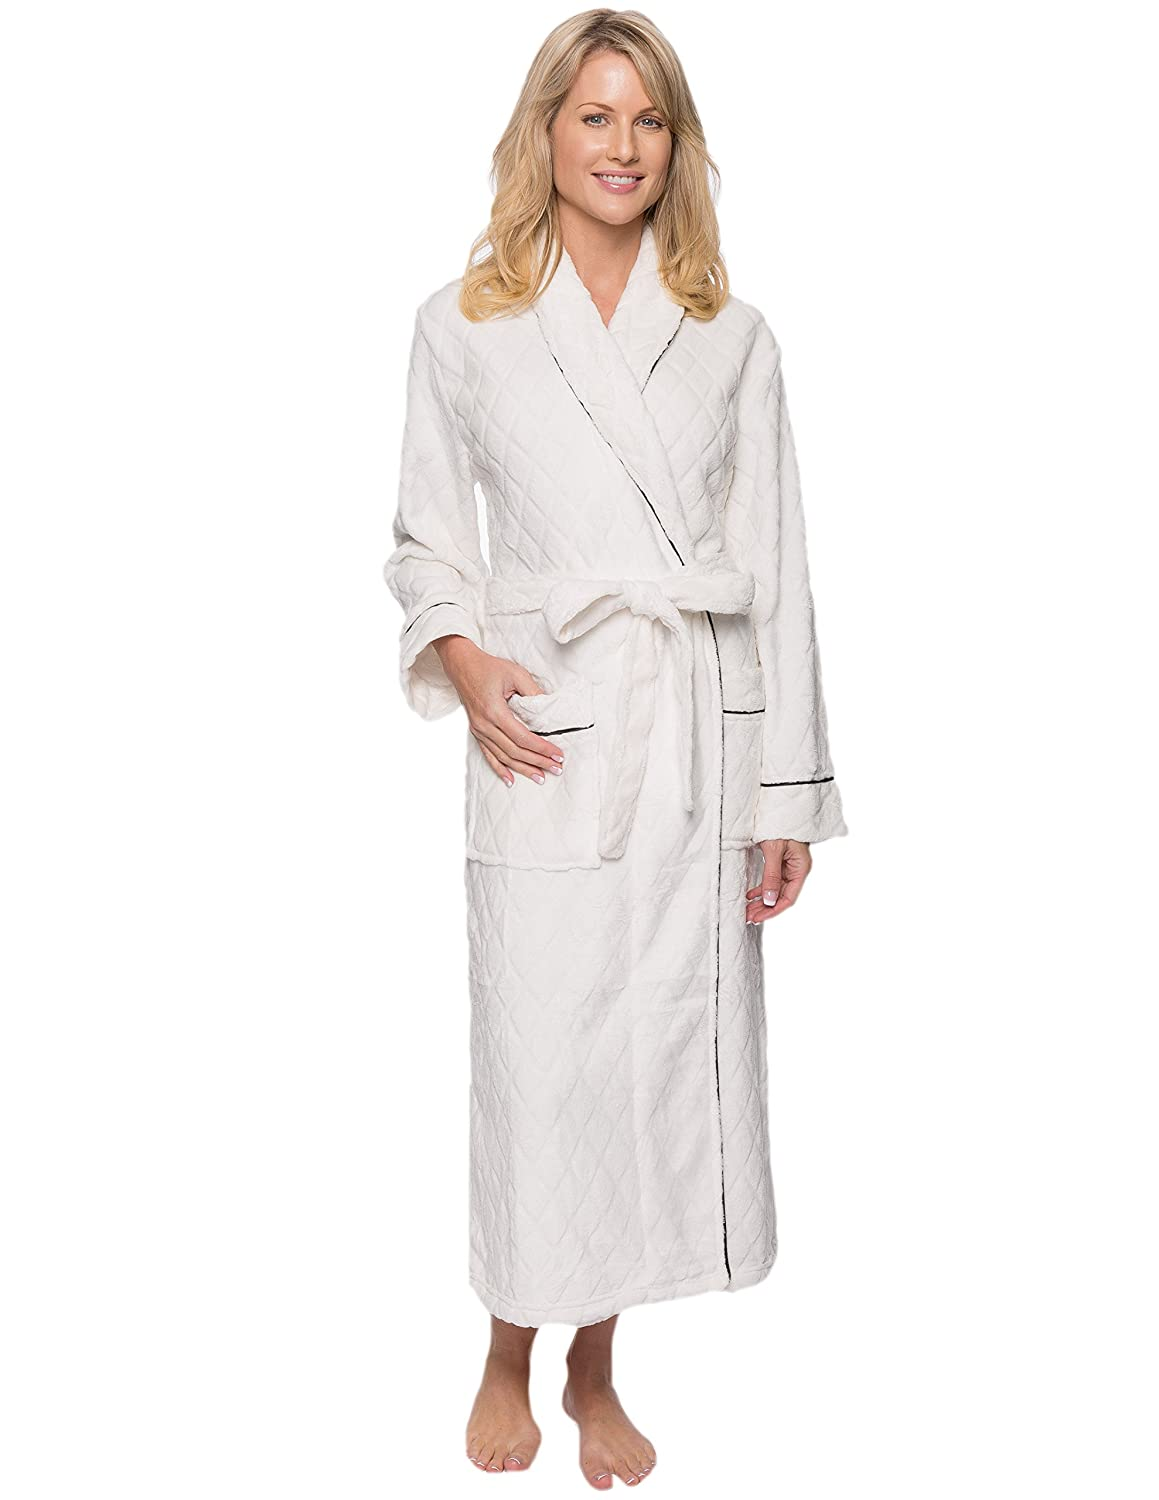 Noble Mount Womens Coral Fleece Spa/Bath Robe